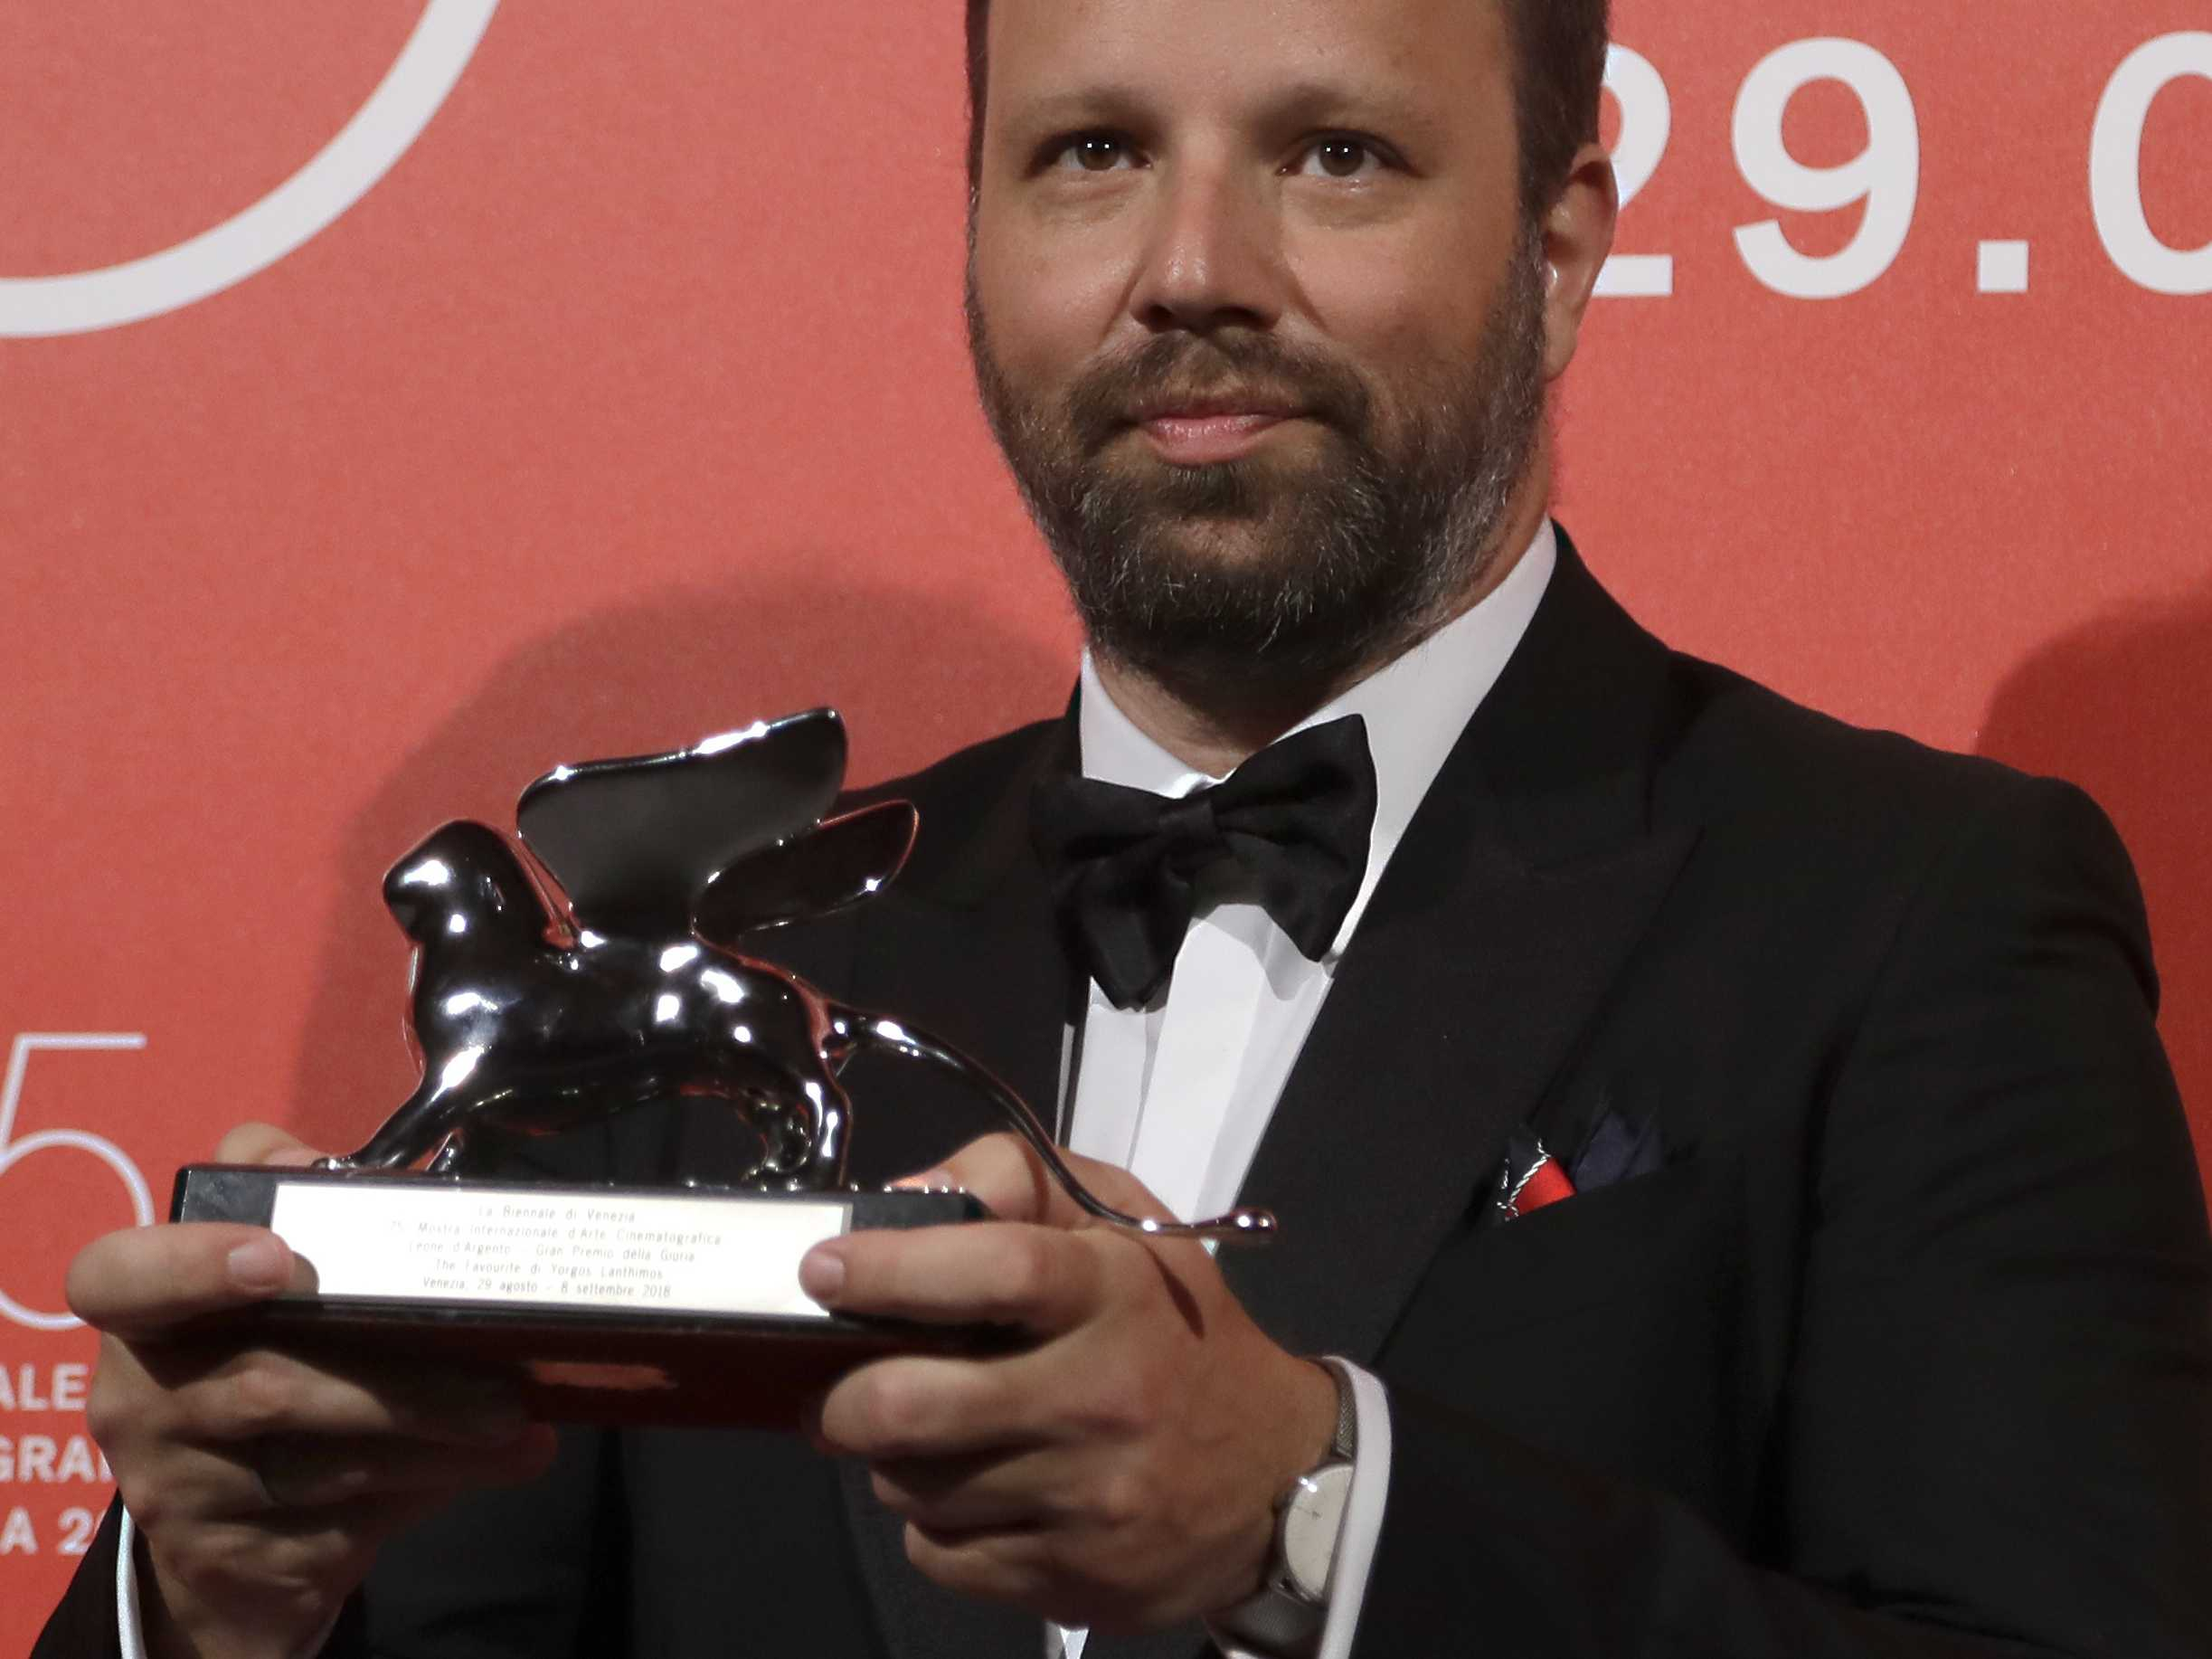 Mexican Director Cuaron's 'Roma' Wins Top Prize at Venice